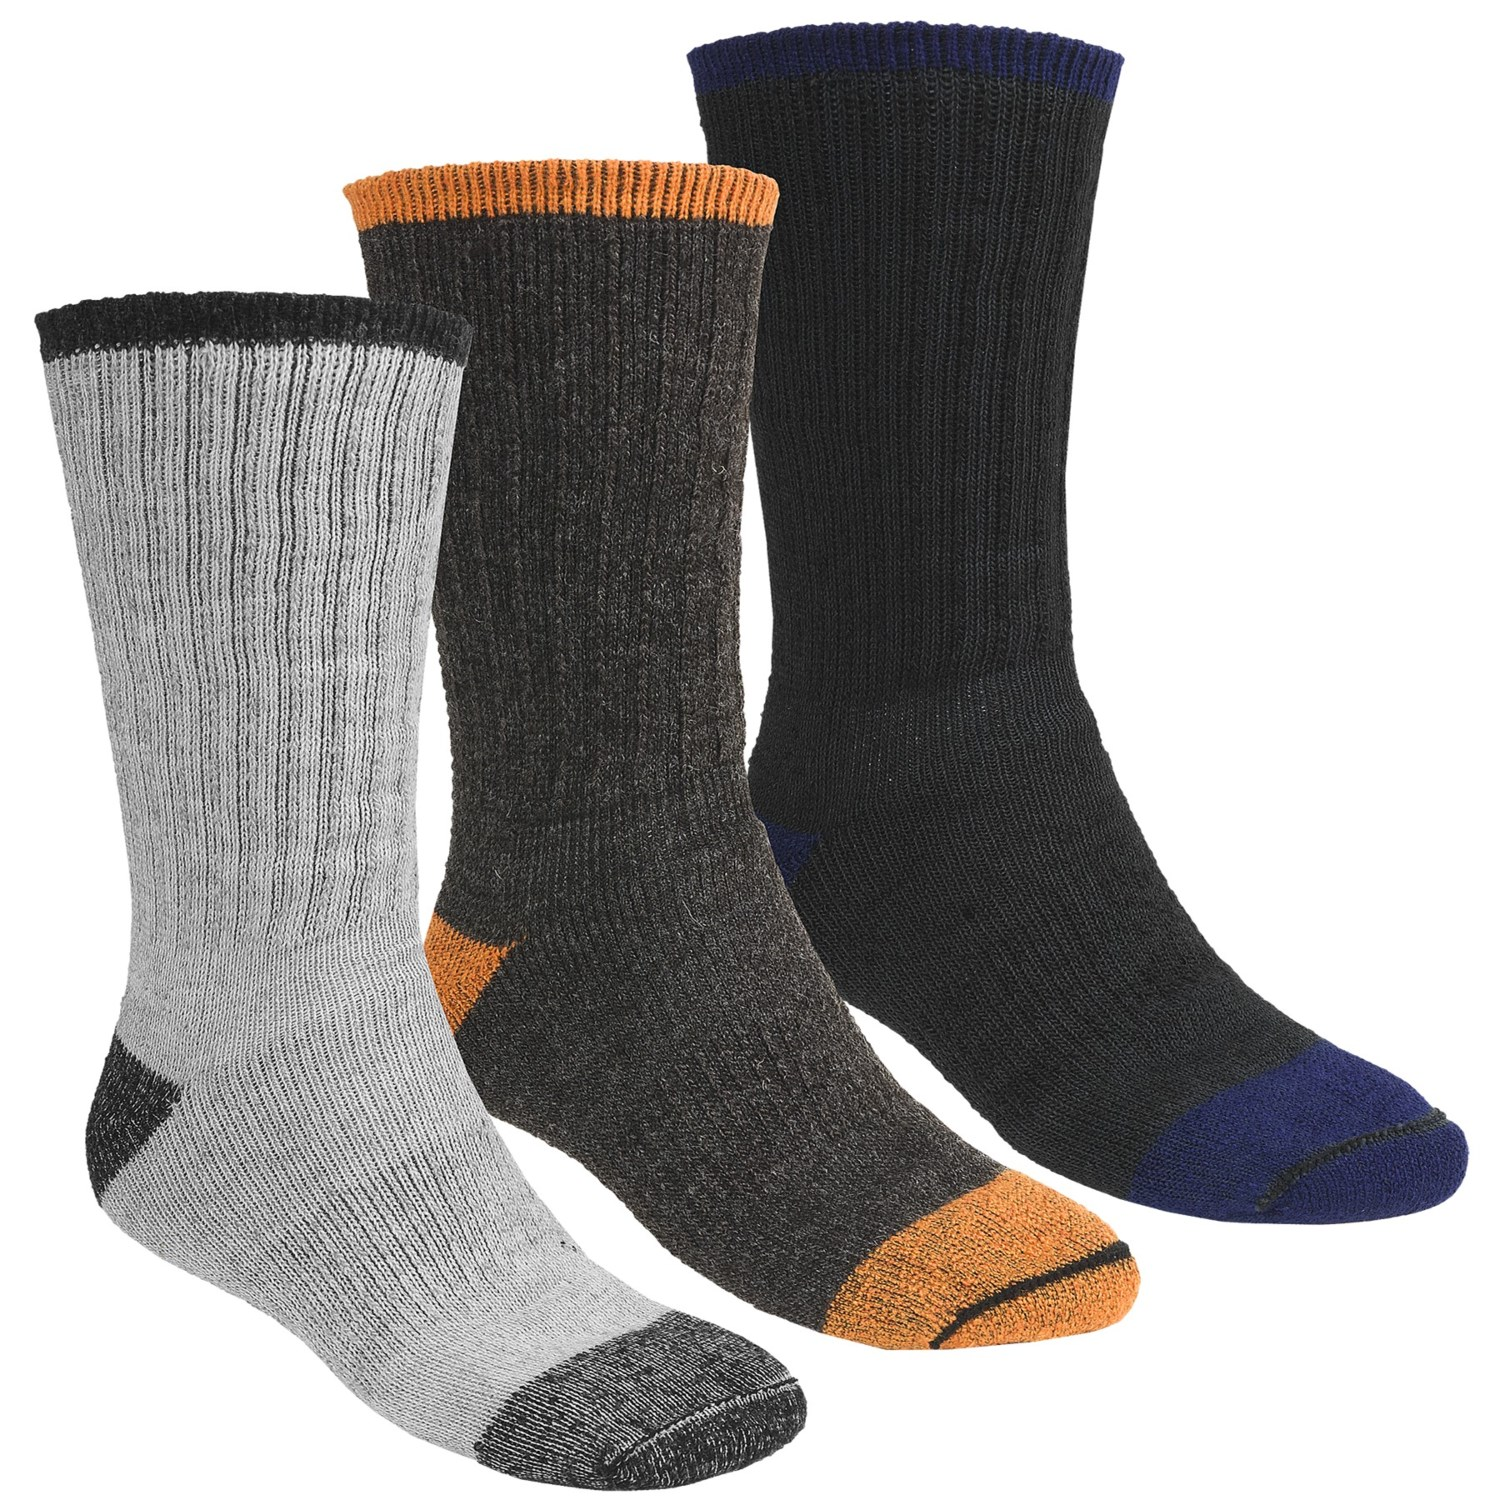 These thick socks are made of 85% Merino wool for incredible warmth in severely cold conditions. The anti-microbial and moisture-wicking properties eliminate unpleasant odors and wick away sweat to keep your feet fresh and dry all day long.5/5(2).